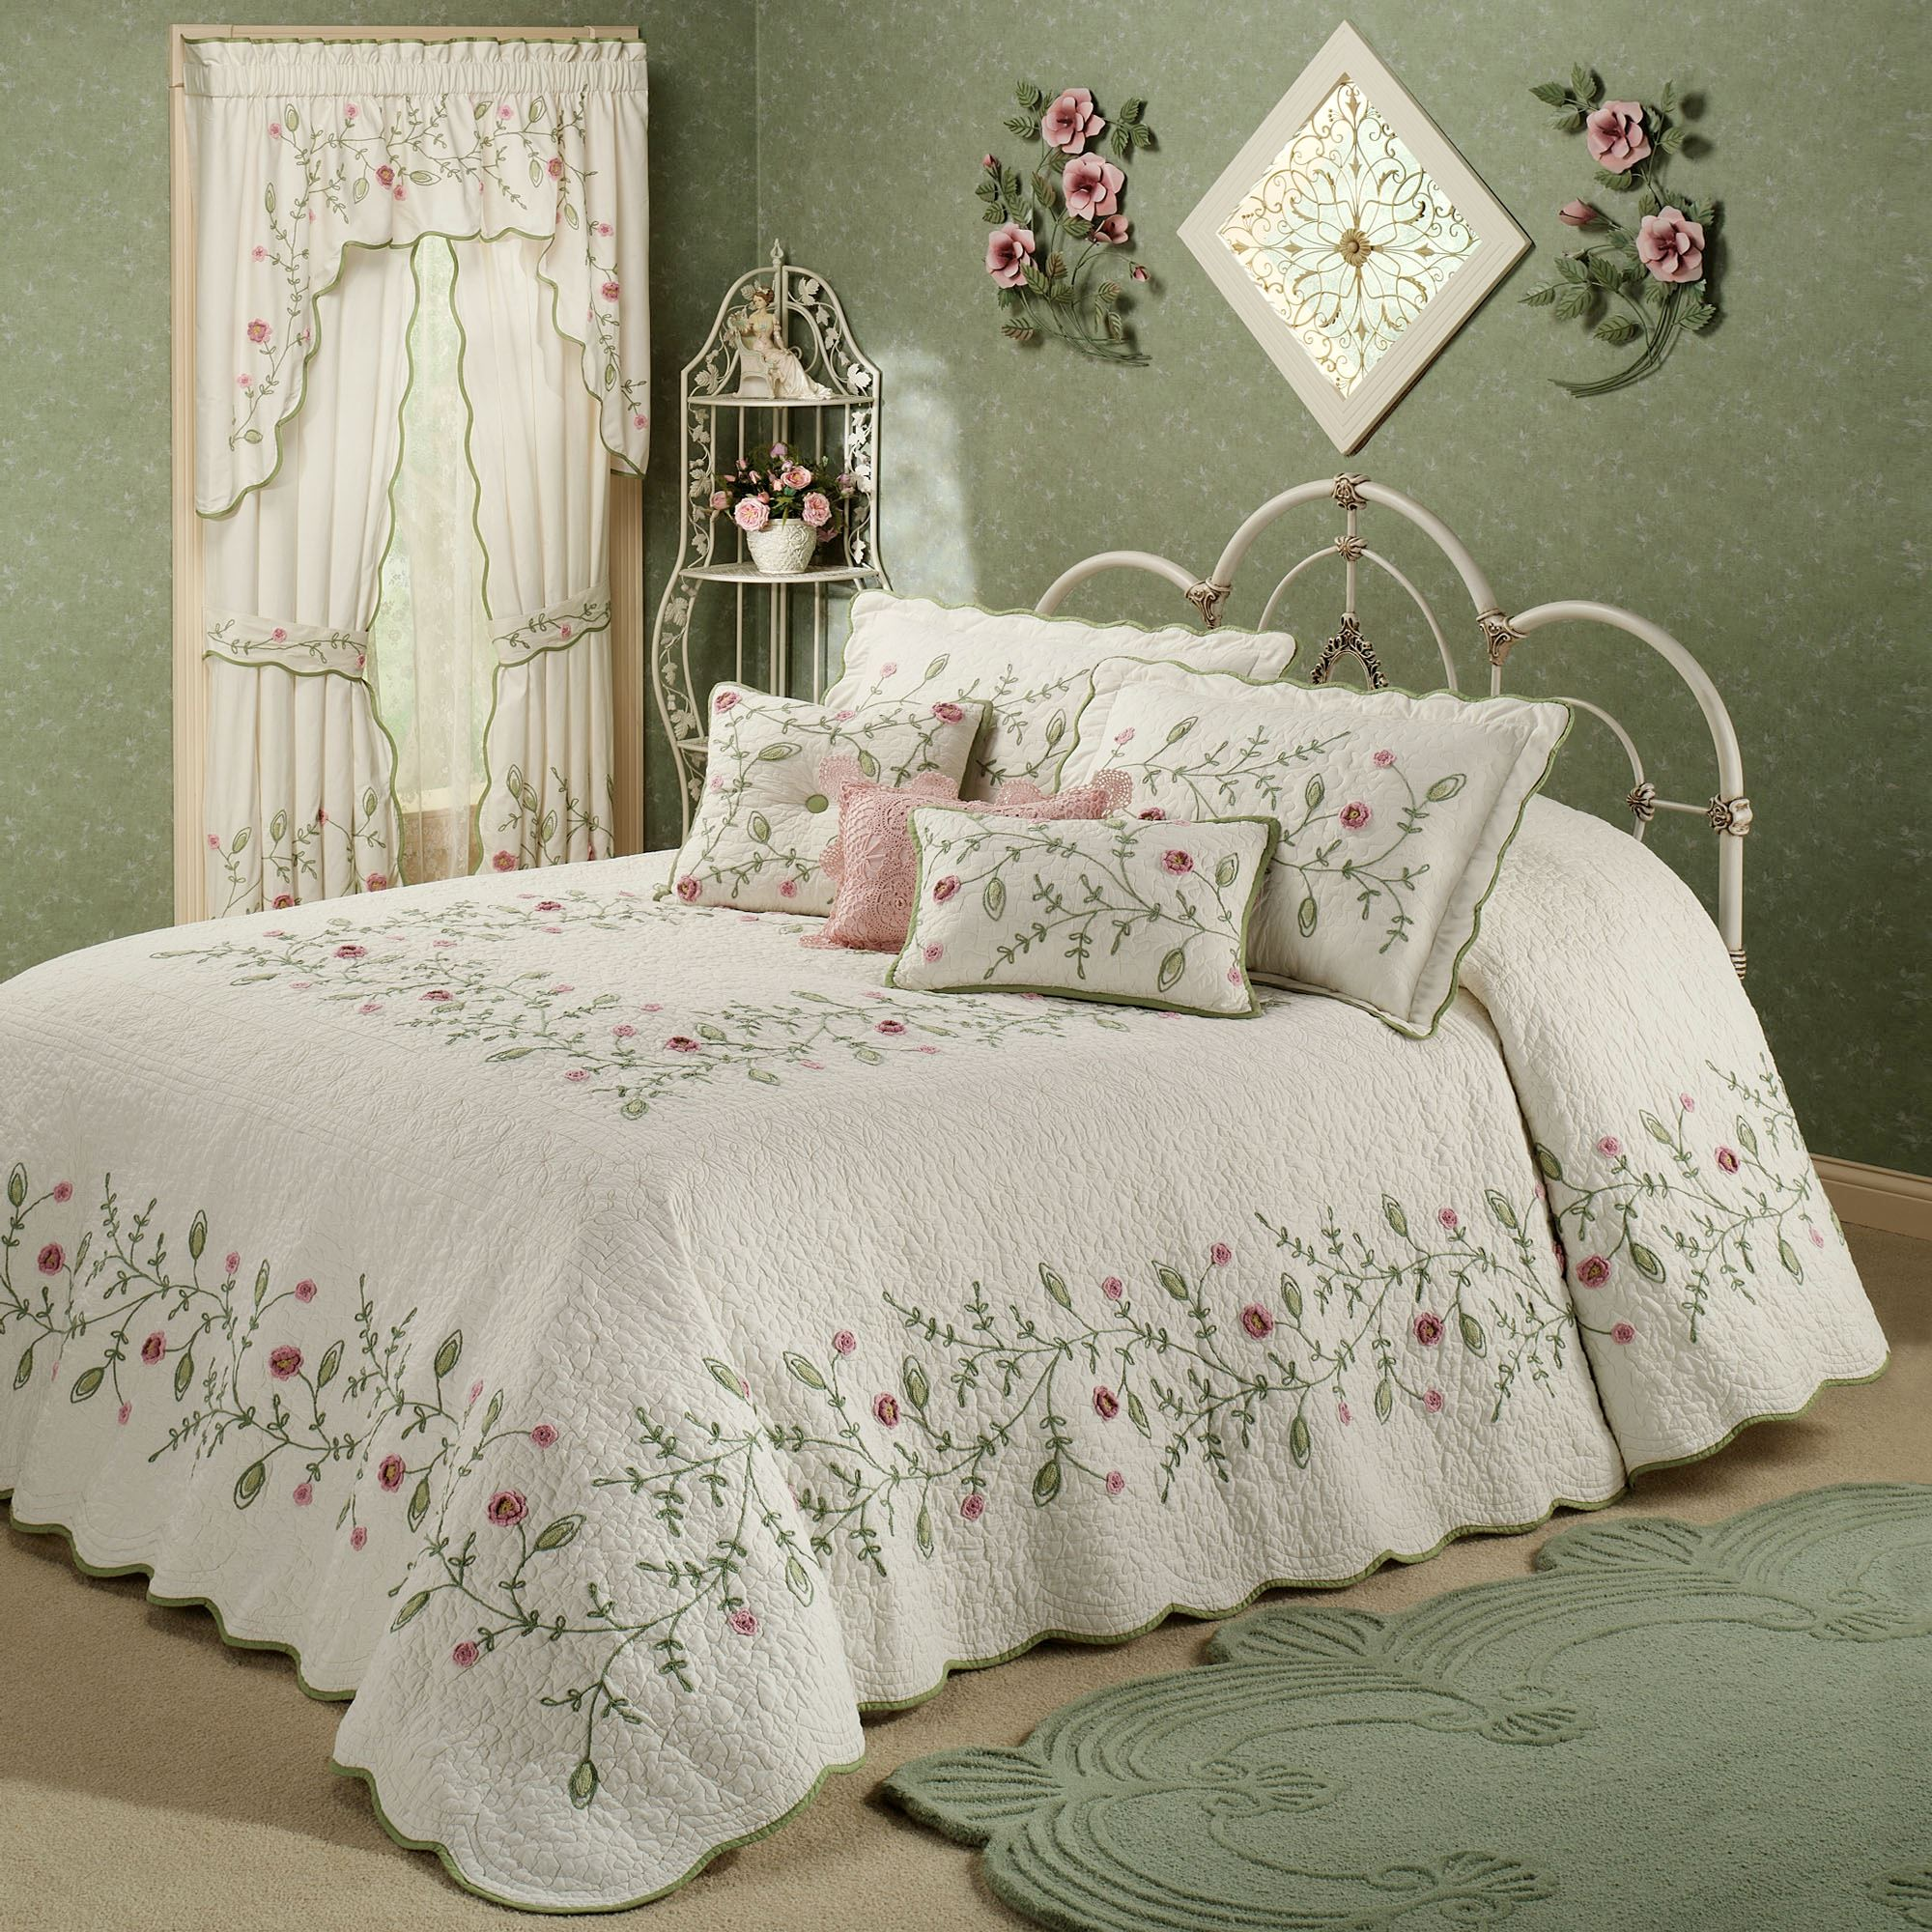 quilted bedspreads all arossa vintage product bedspread floral microfiber embroidered quilt